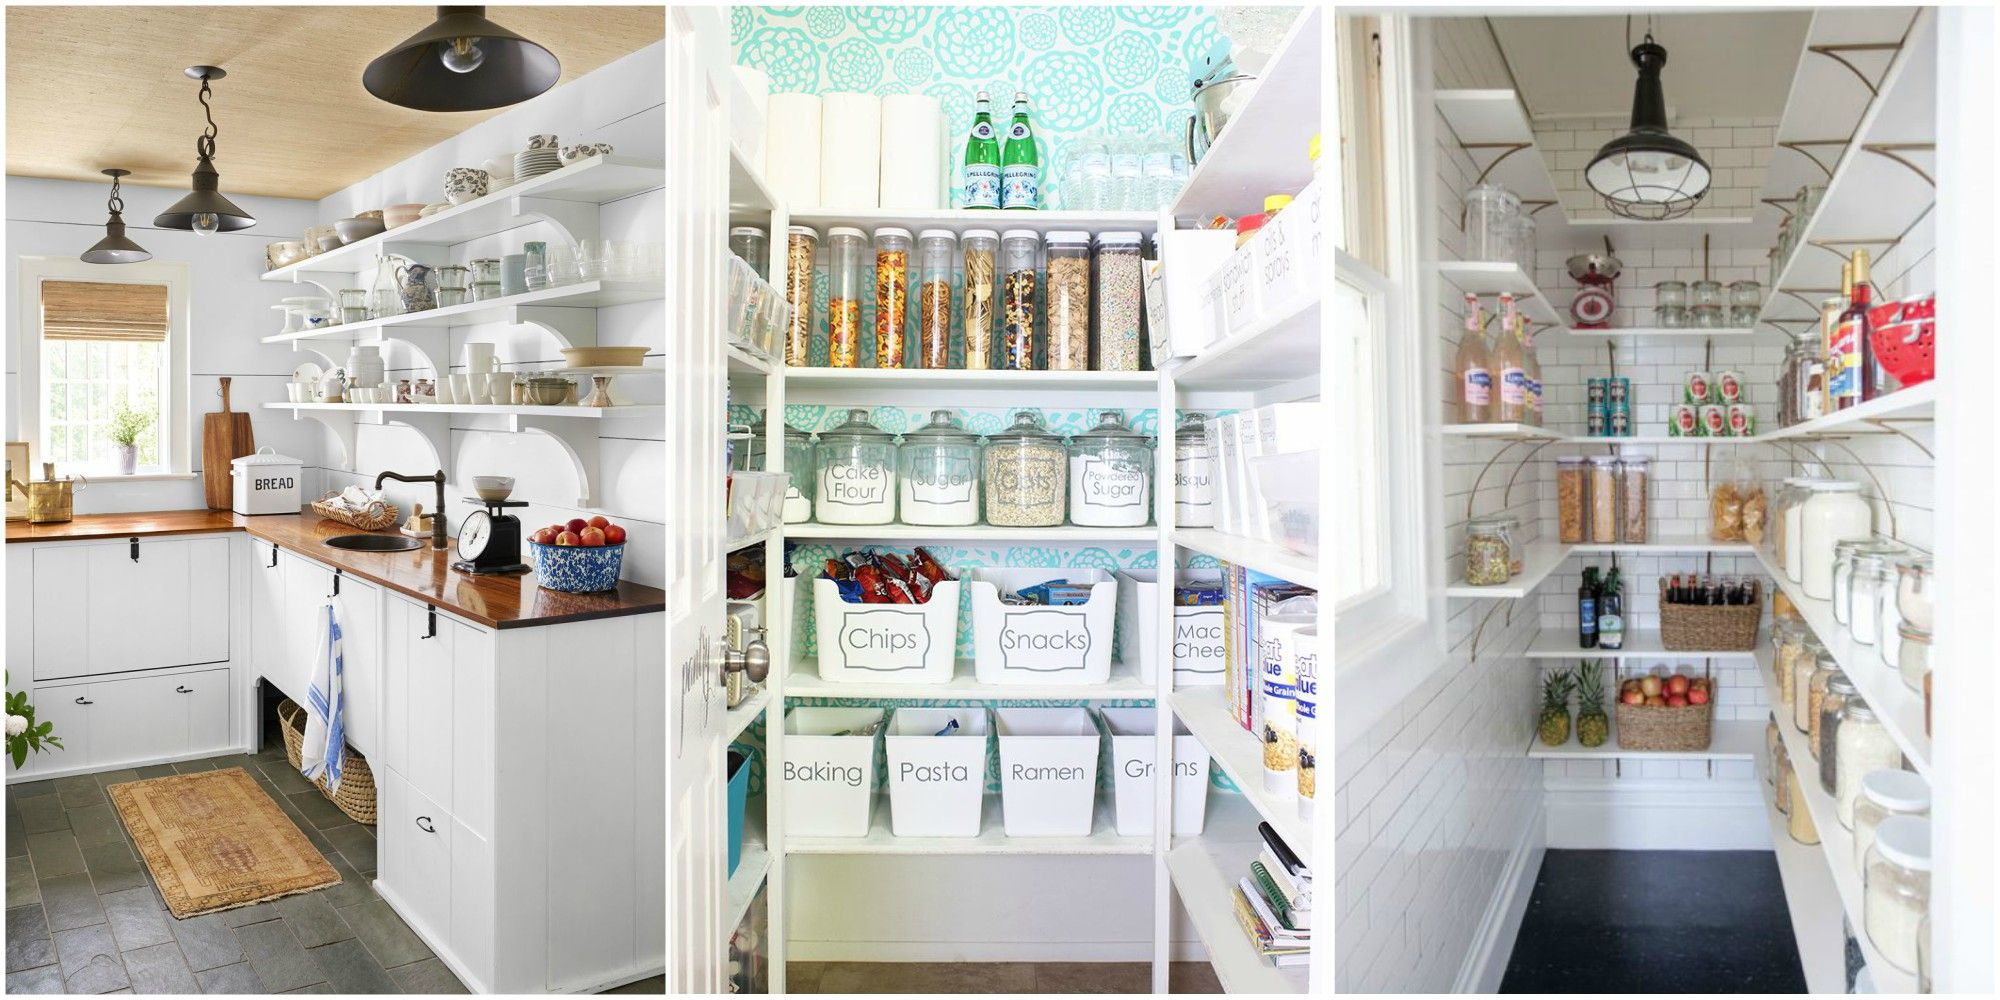 High Quality Pantry Organization, Pantry Ideas